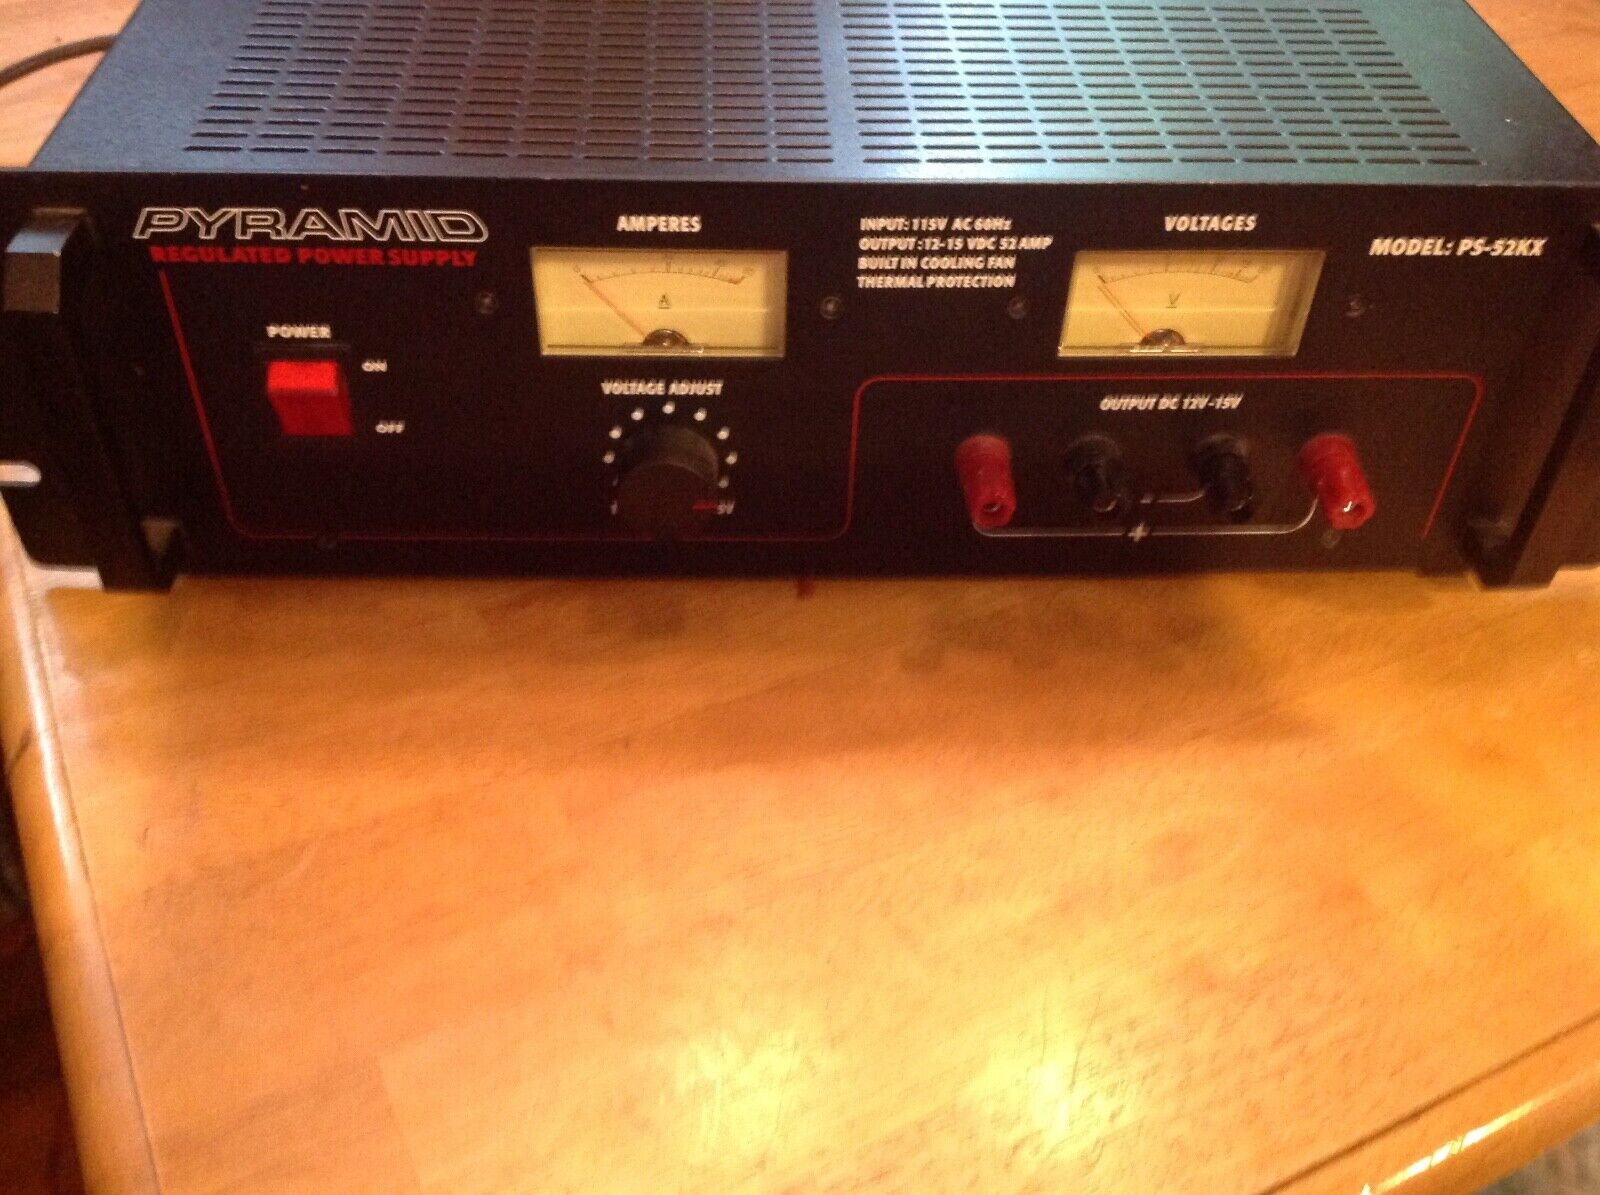 PYRAMID PS52KX Power Supply. Available Now for 200.00